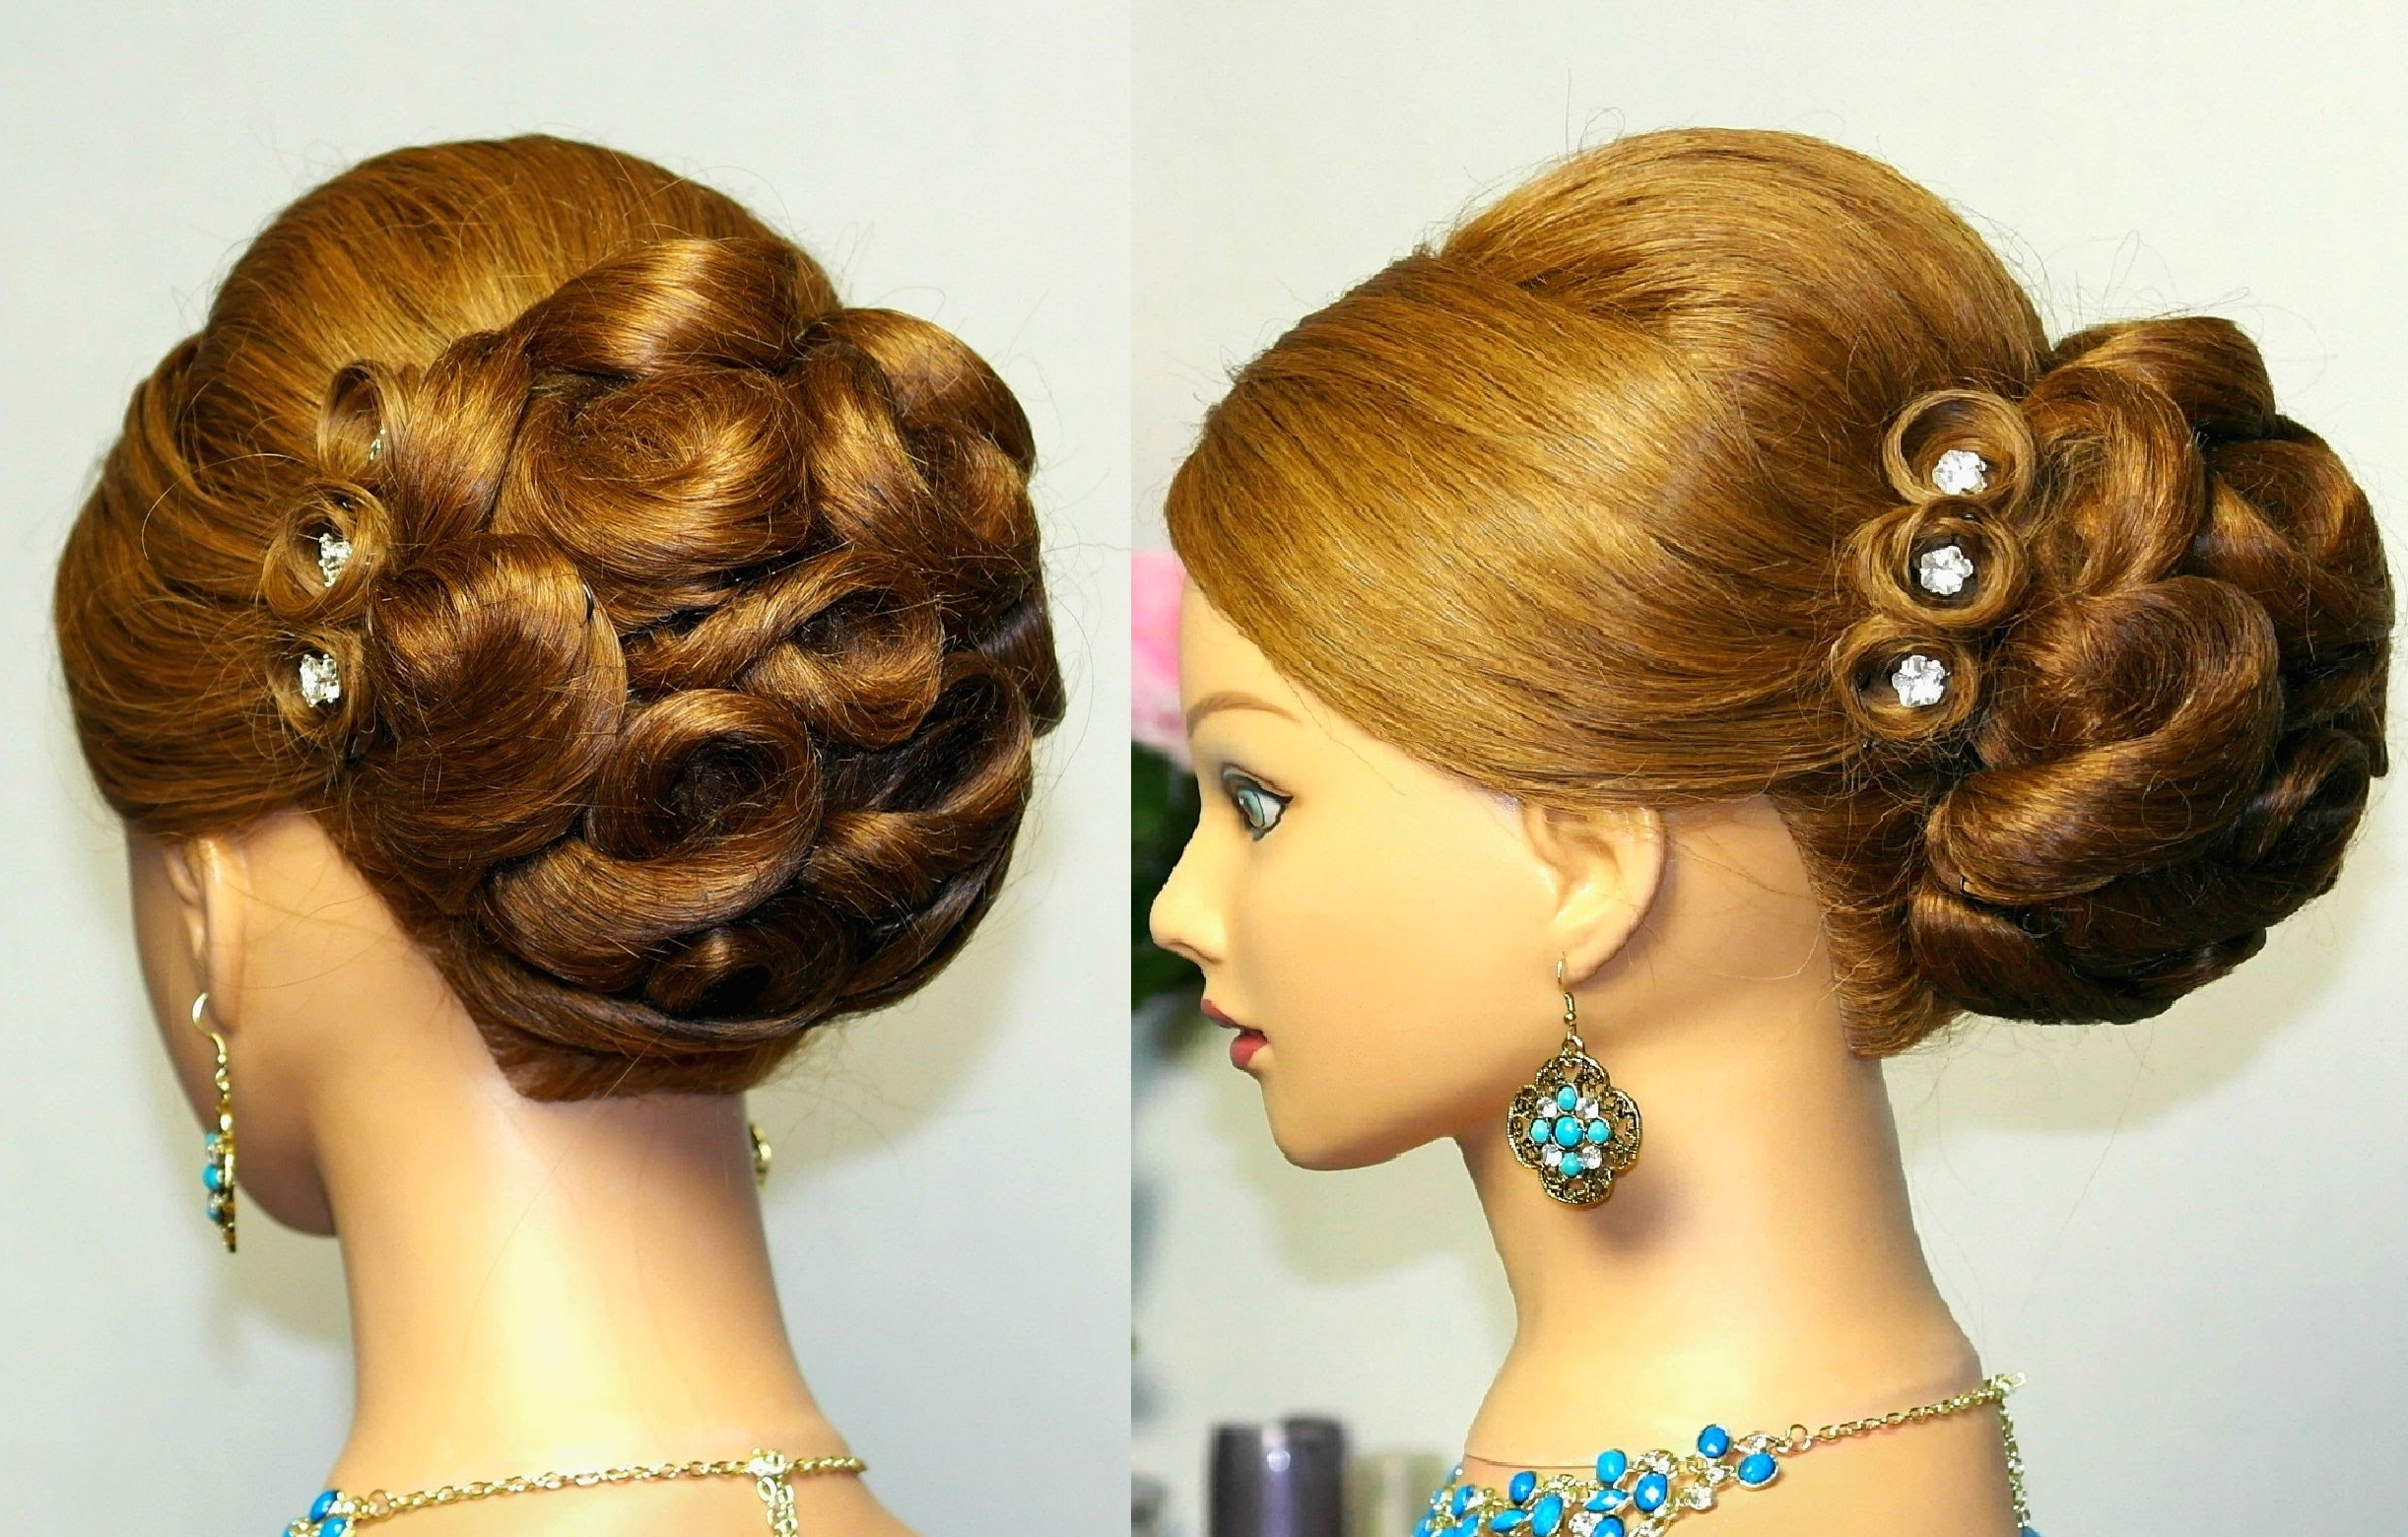 Prom Hairstyle For Long Hair (View 2 of 15)